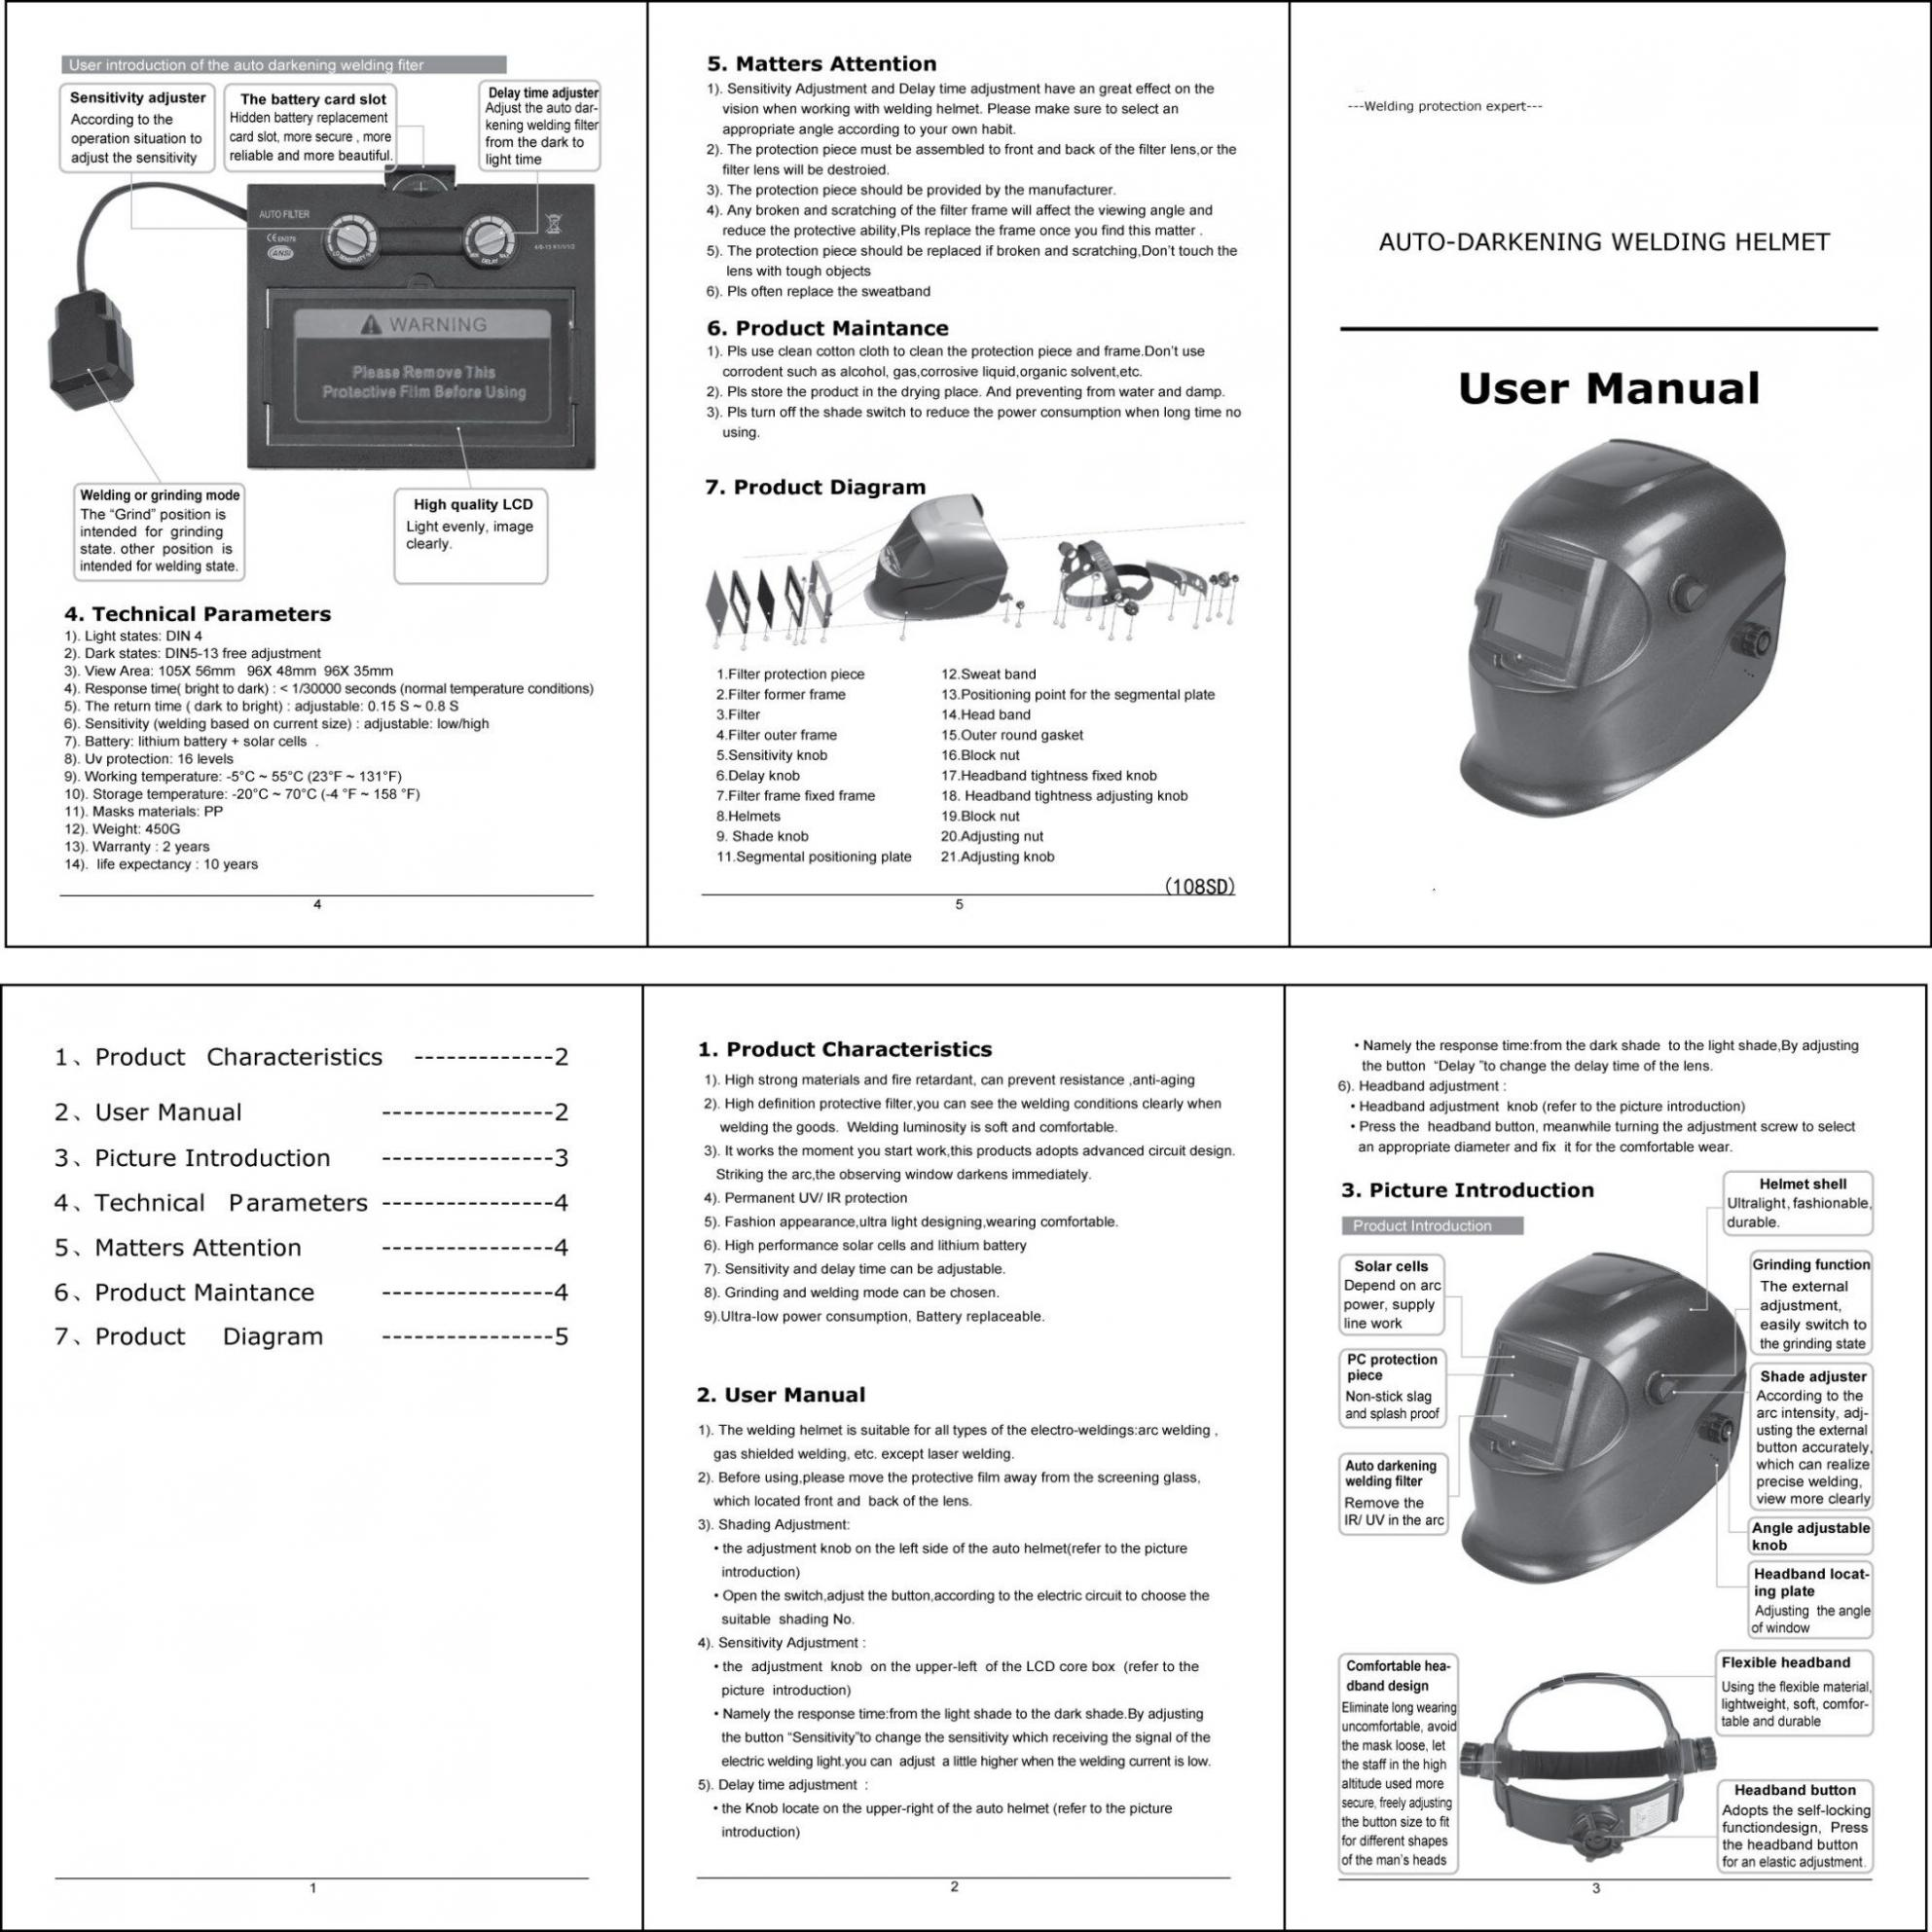 Welding Helmet Diagram Wiring Library 10324 Description 9 L3